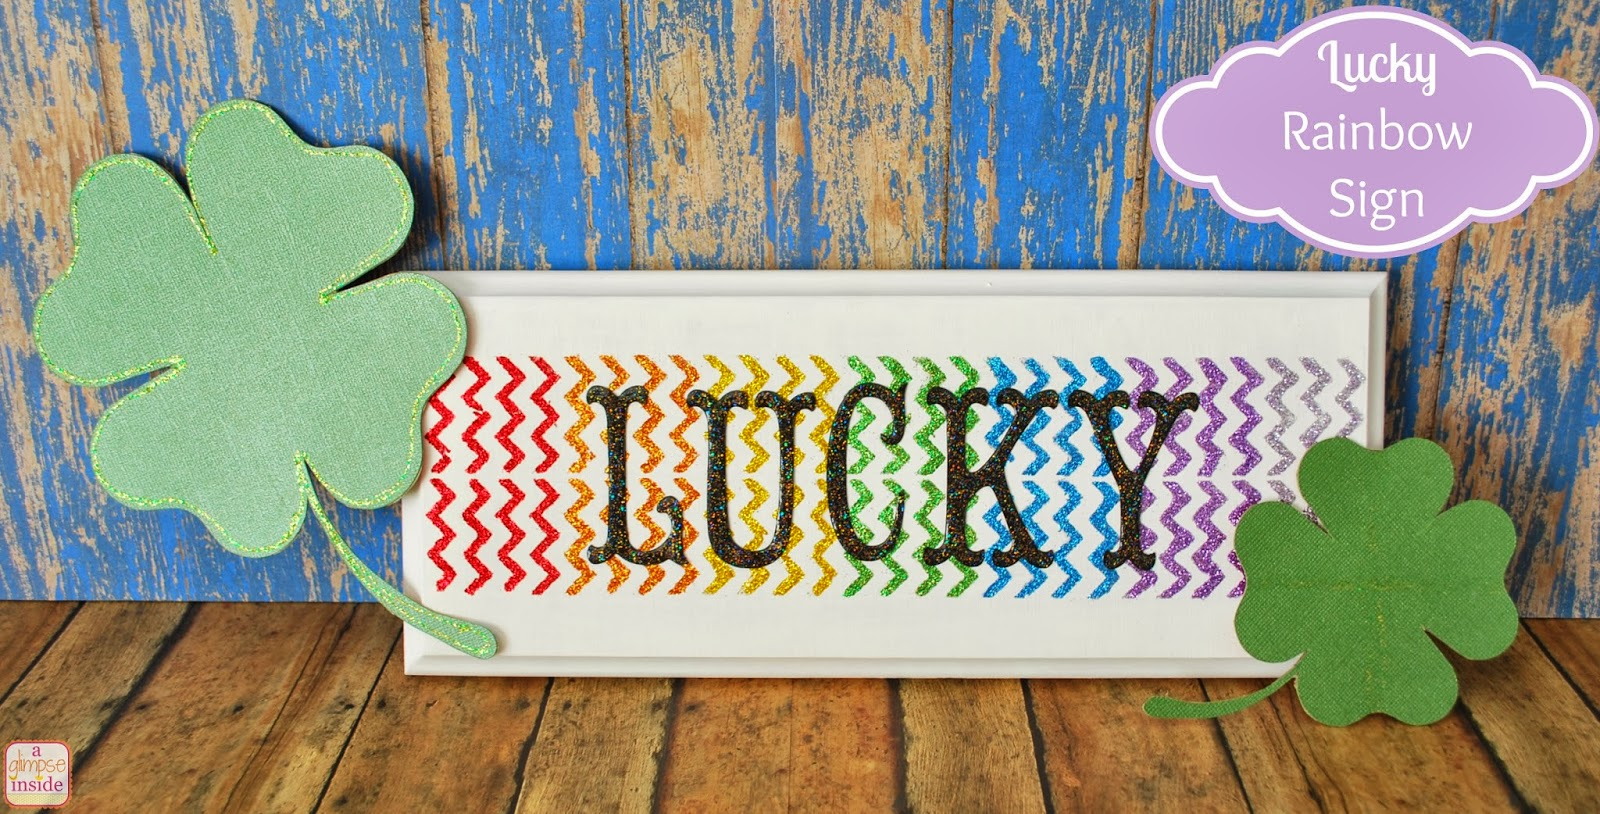 http://www.aglimpseinsideblog.com/2014/02/lucky-rainbow-sign-tutorial-giveaway.html